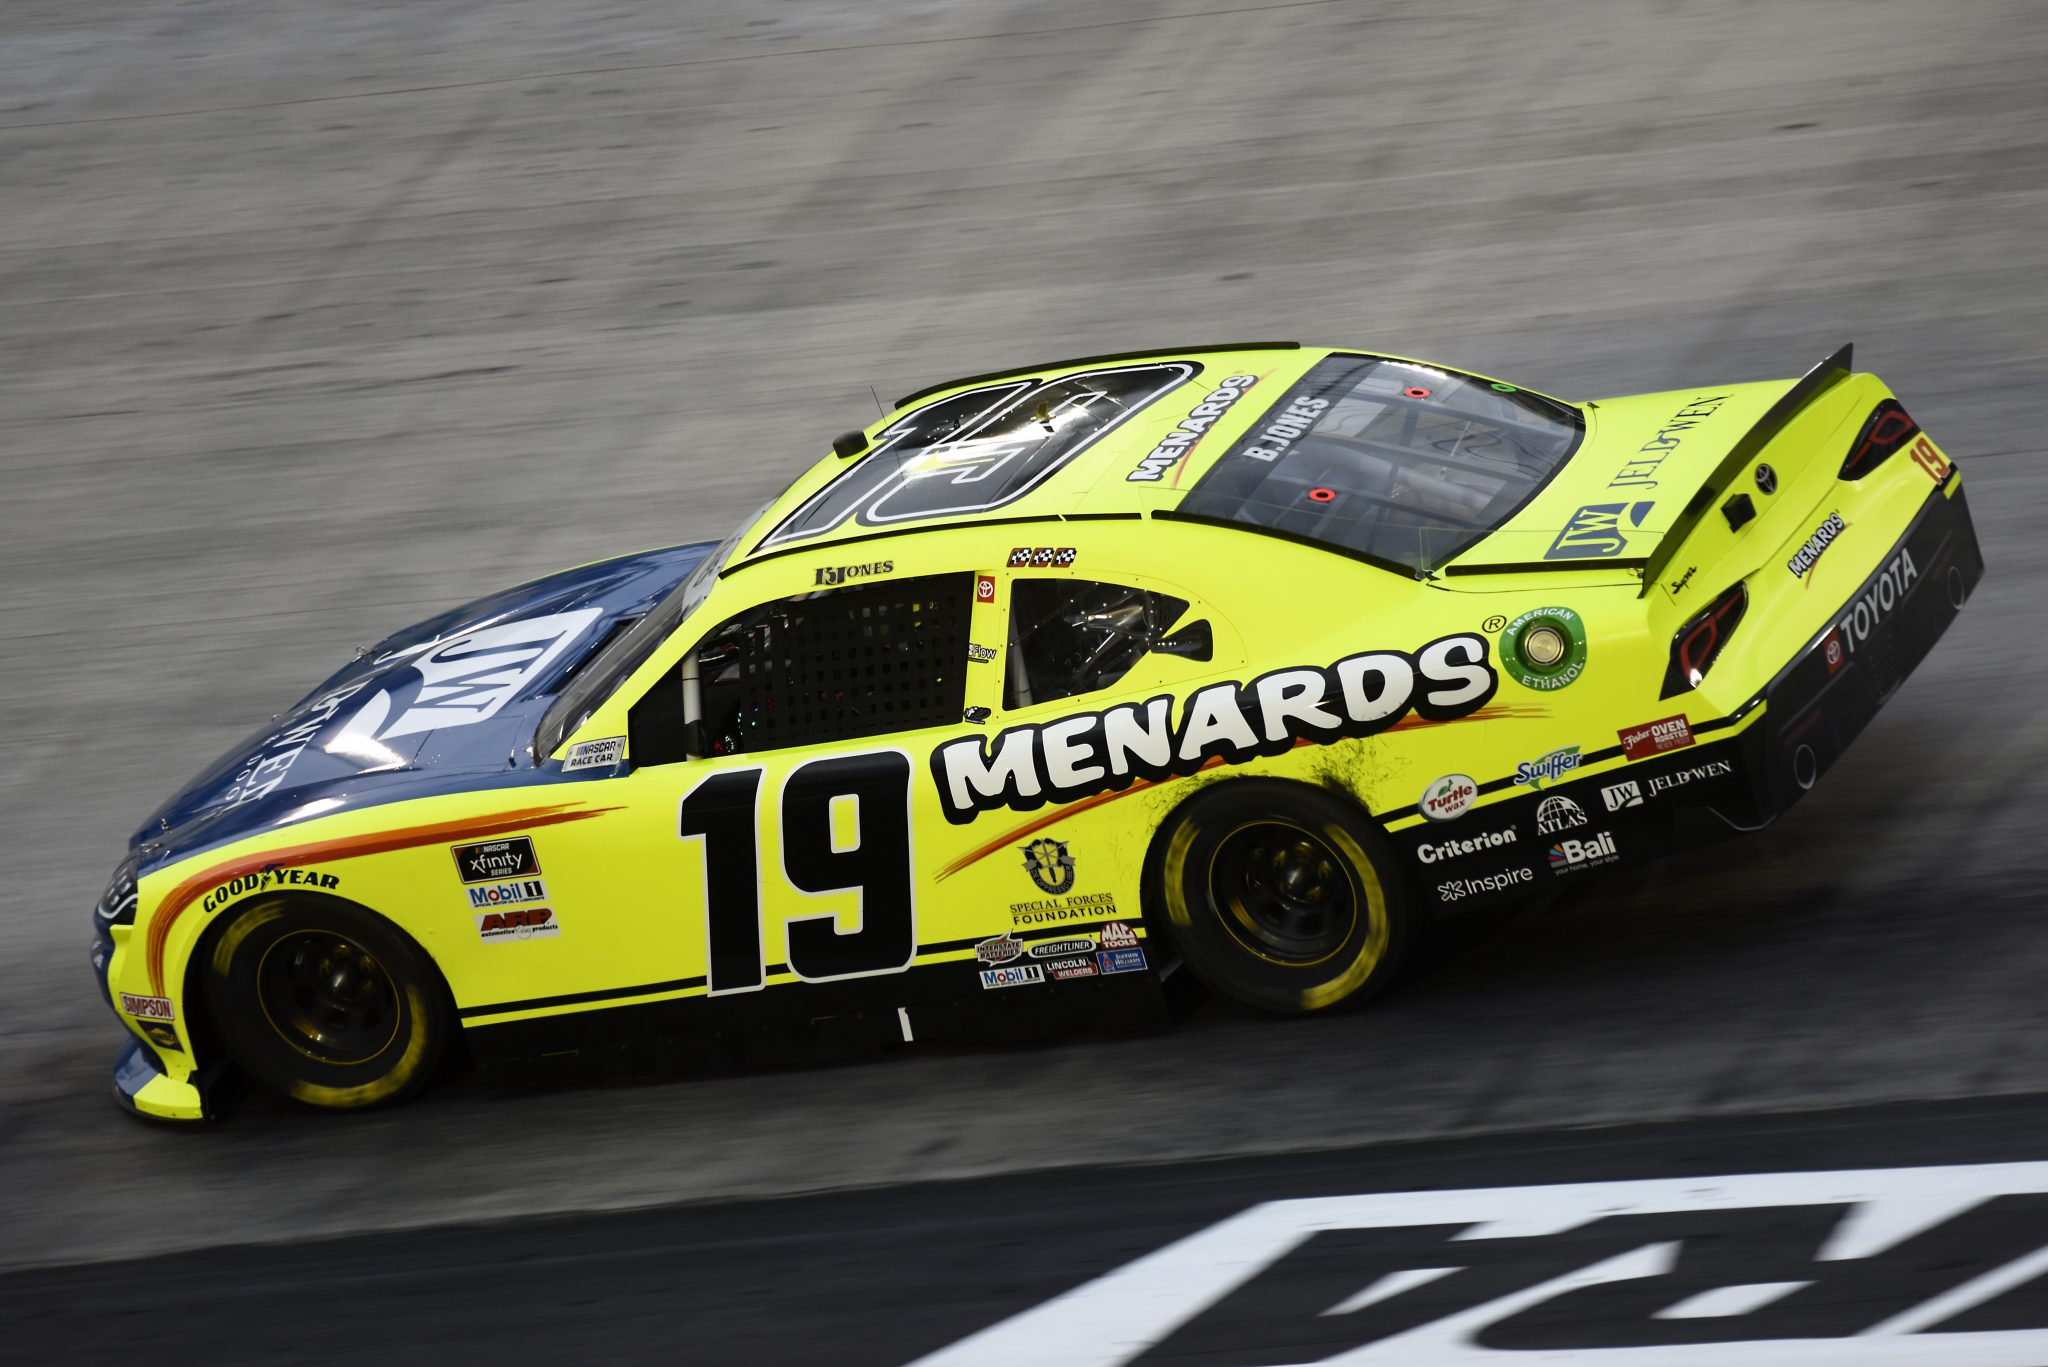 BRISTOL, TENNESSEE - SEPTEMBER 18: Brandon Jones, driver of the #19 Menards/Jen-Weld Toyota, drives during the NASCAR Xfinity Series Food City 300 at Bristol Motor Speedway on September 18, 2020 in Bristol, Tennessee. (Photo by Jared C. Tilton/Getty Images) | Getty Images